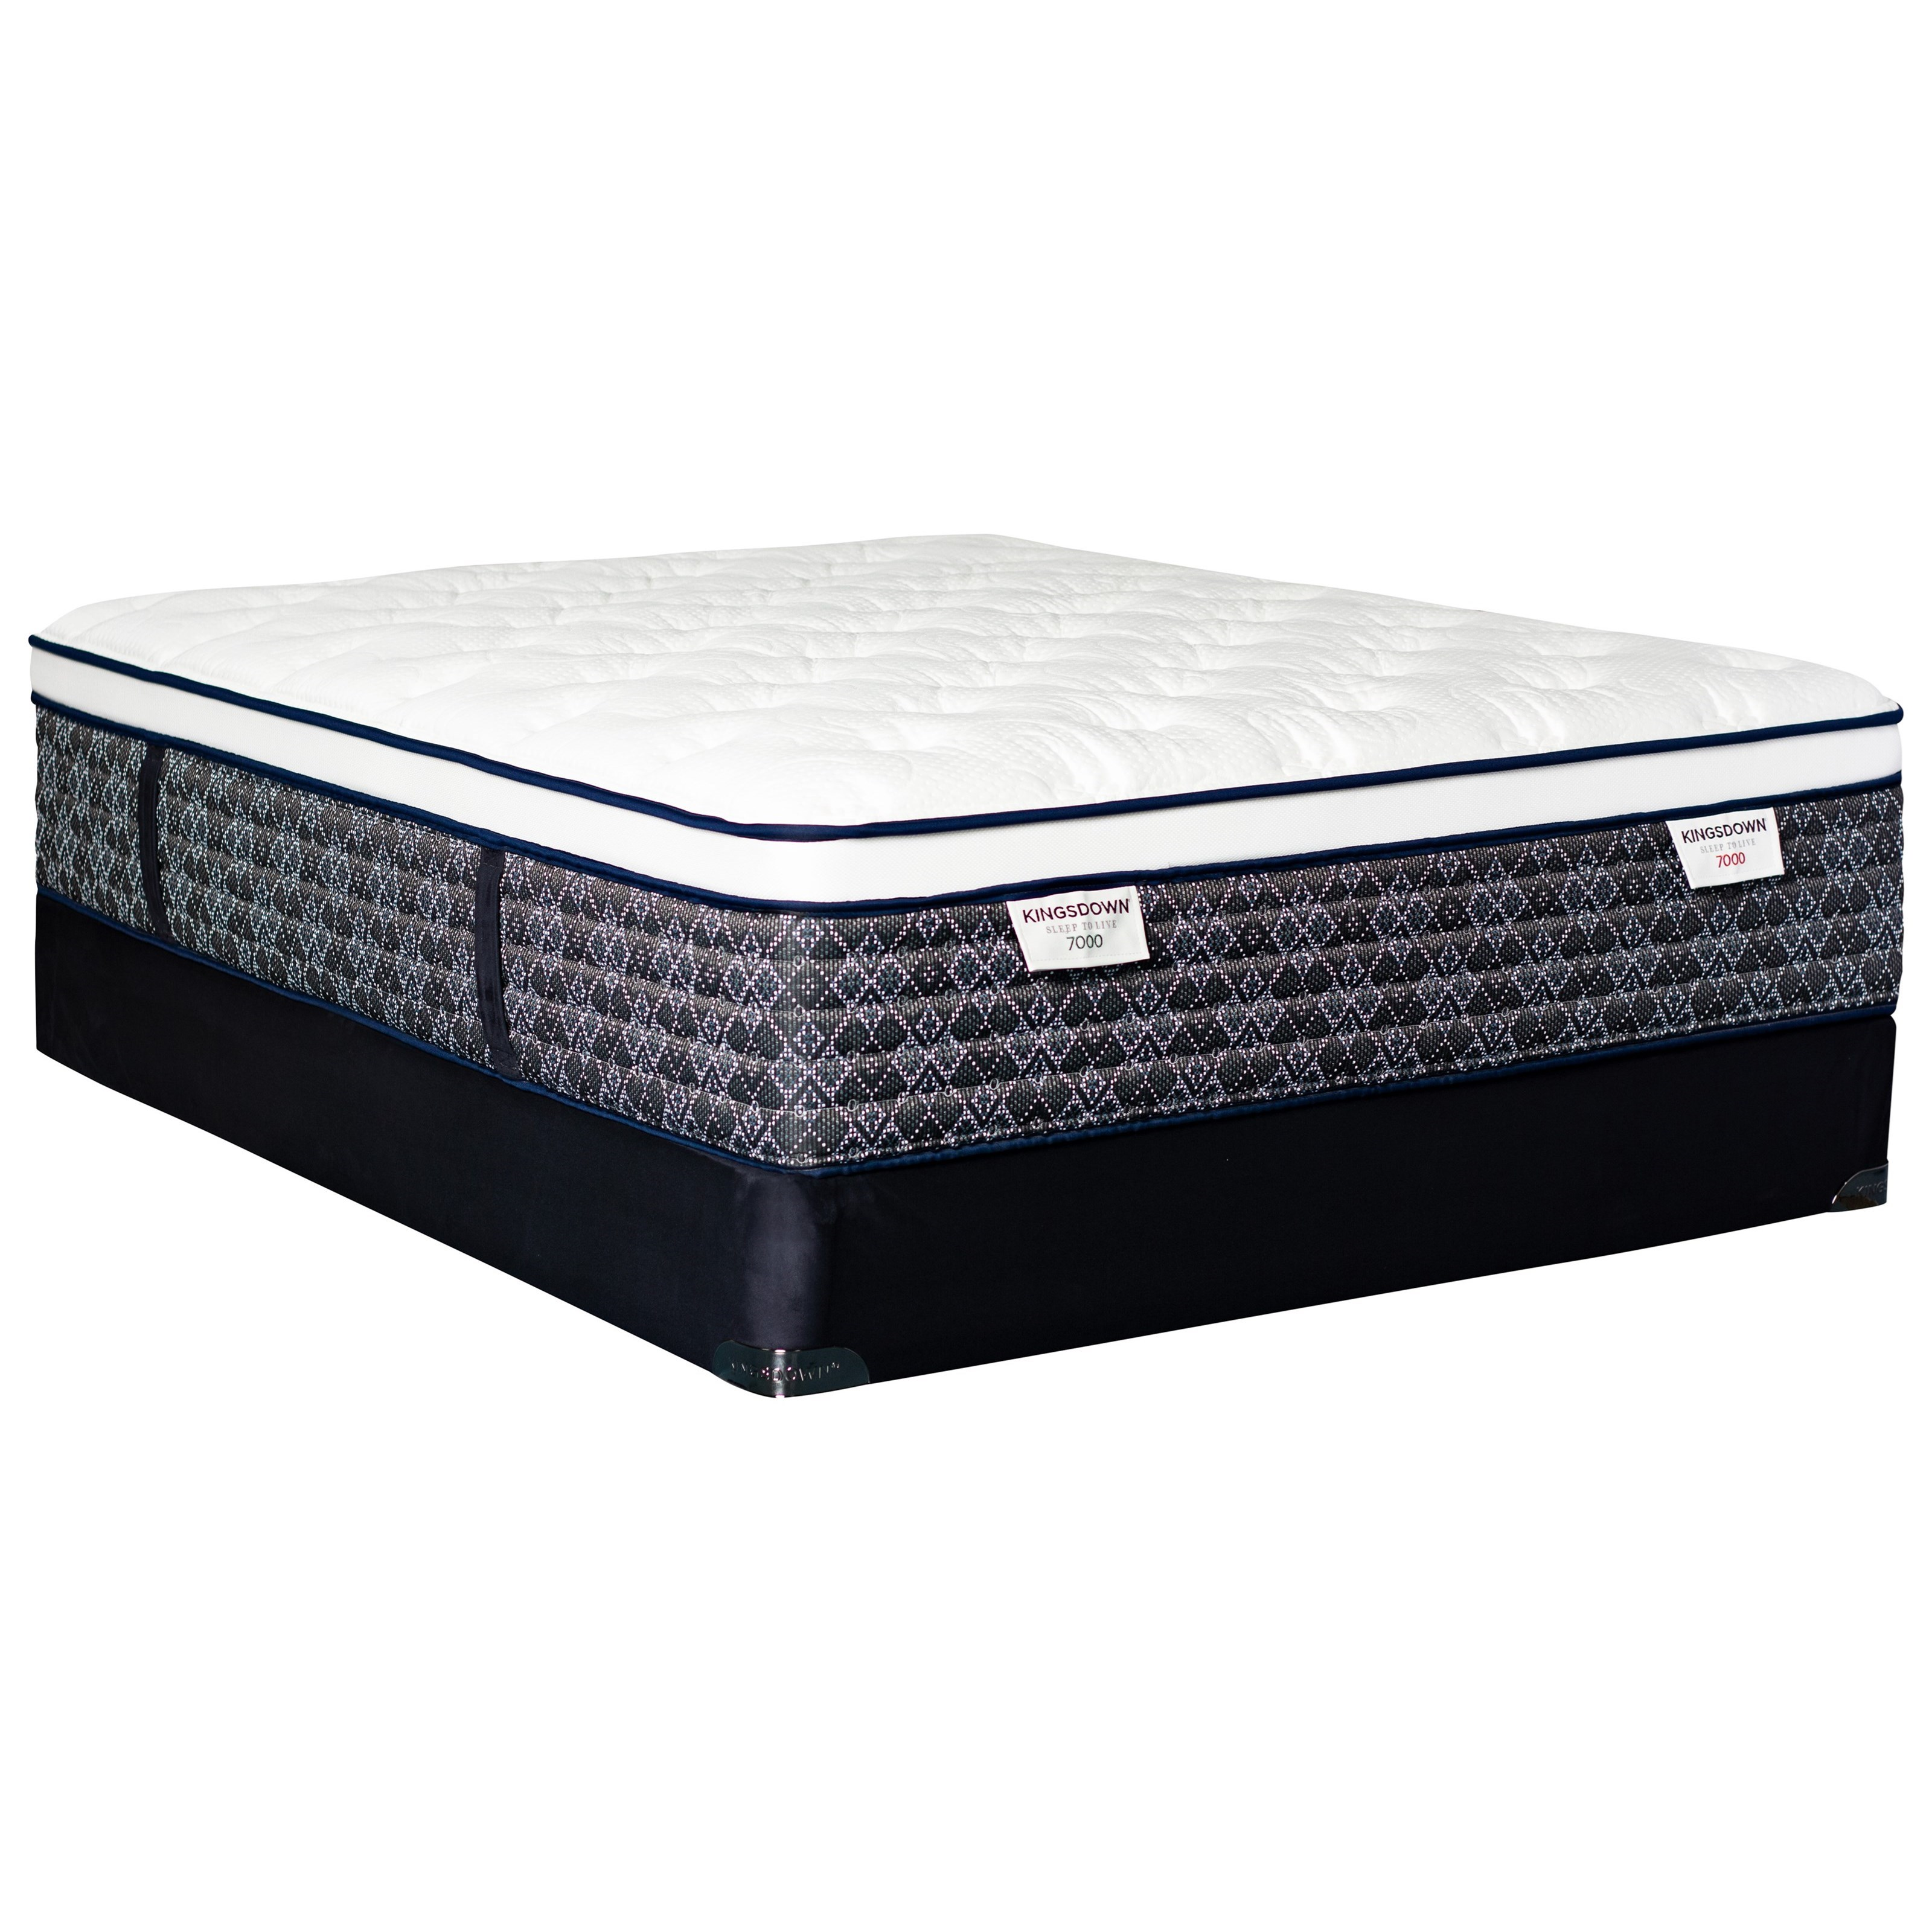 Sleep to Live 9000 Gold Blue ET Queen Pocketed Coil Mattress LoPro Set by Kingsdown at Story & Lee Furniture